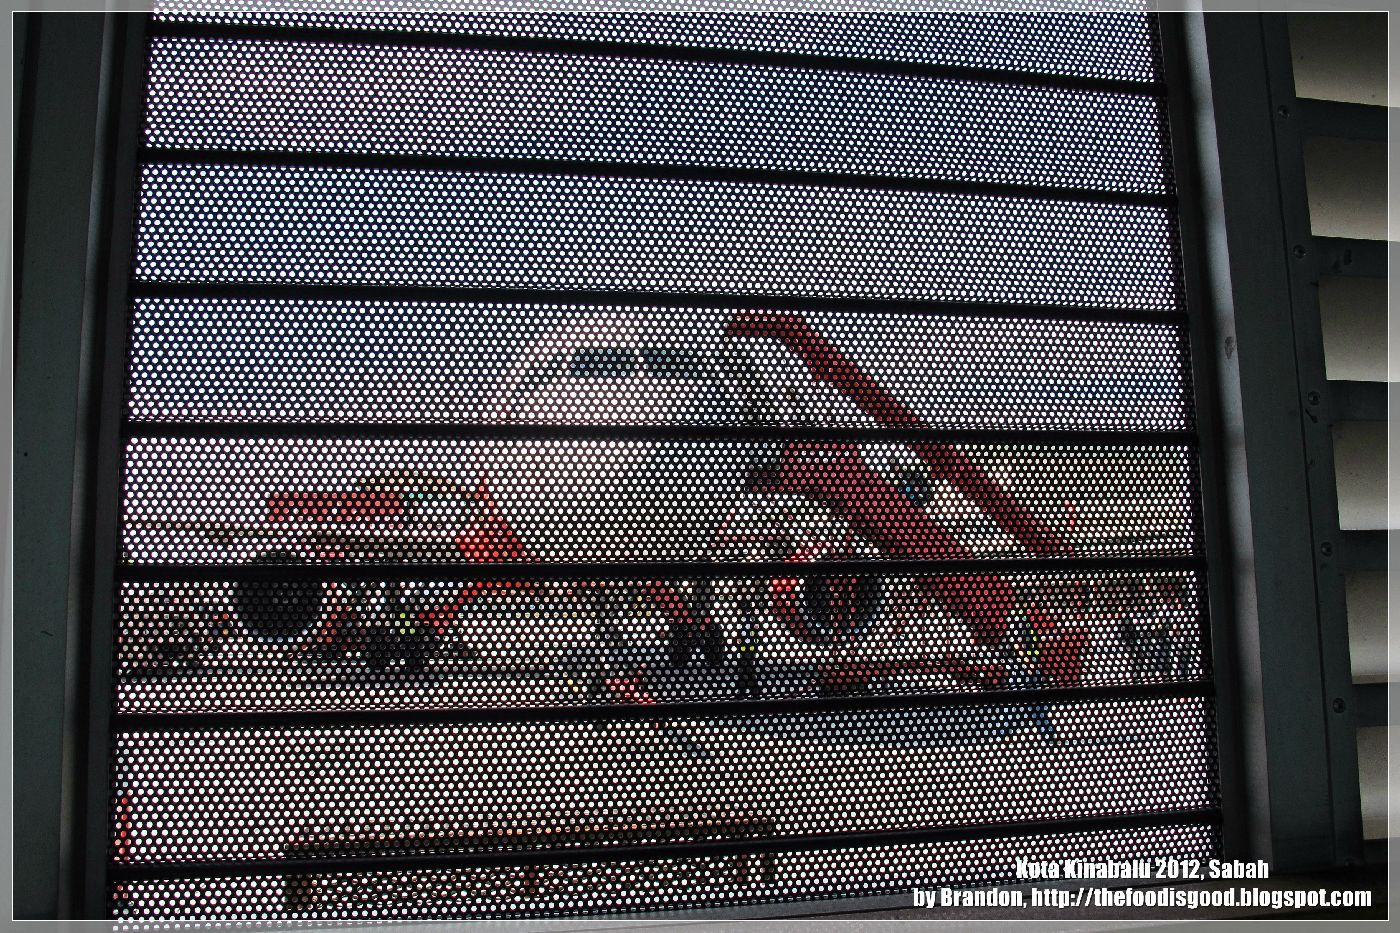 Window grille kota kinabalu - The Pull Down Grills Give The Plane A Kind Of Surreal Look